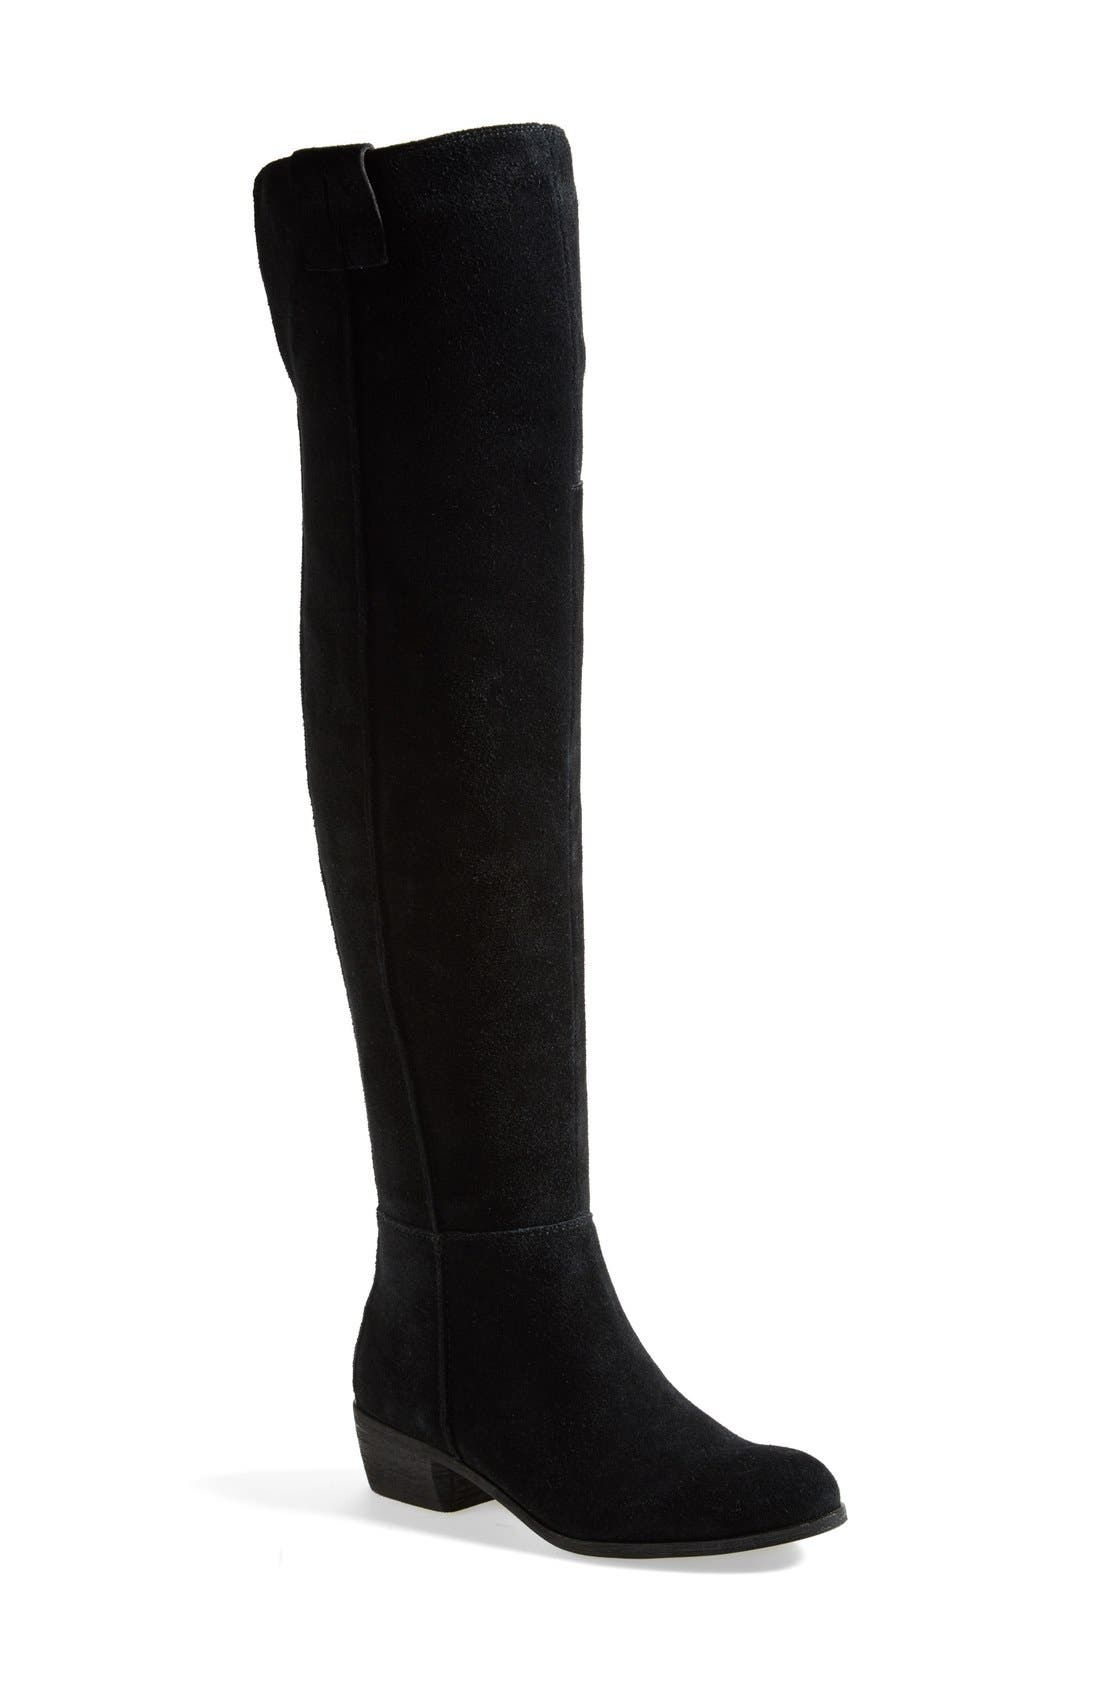 'Johanna' Over the Knee Suede Boot,                         Main,                         color, 001